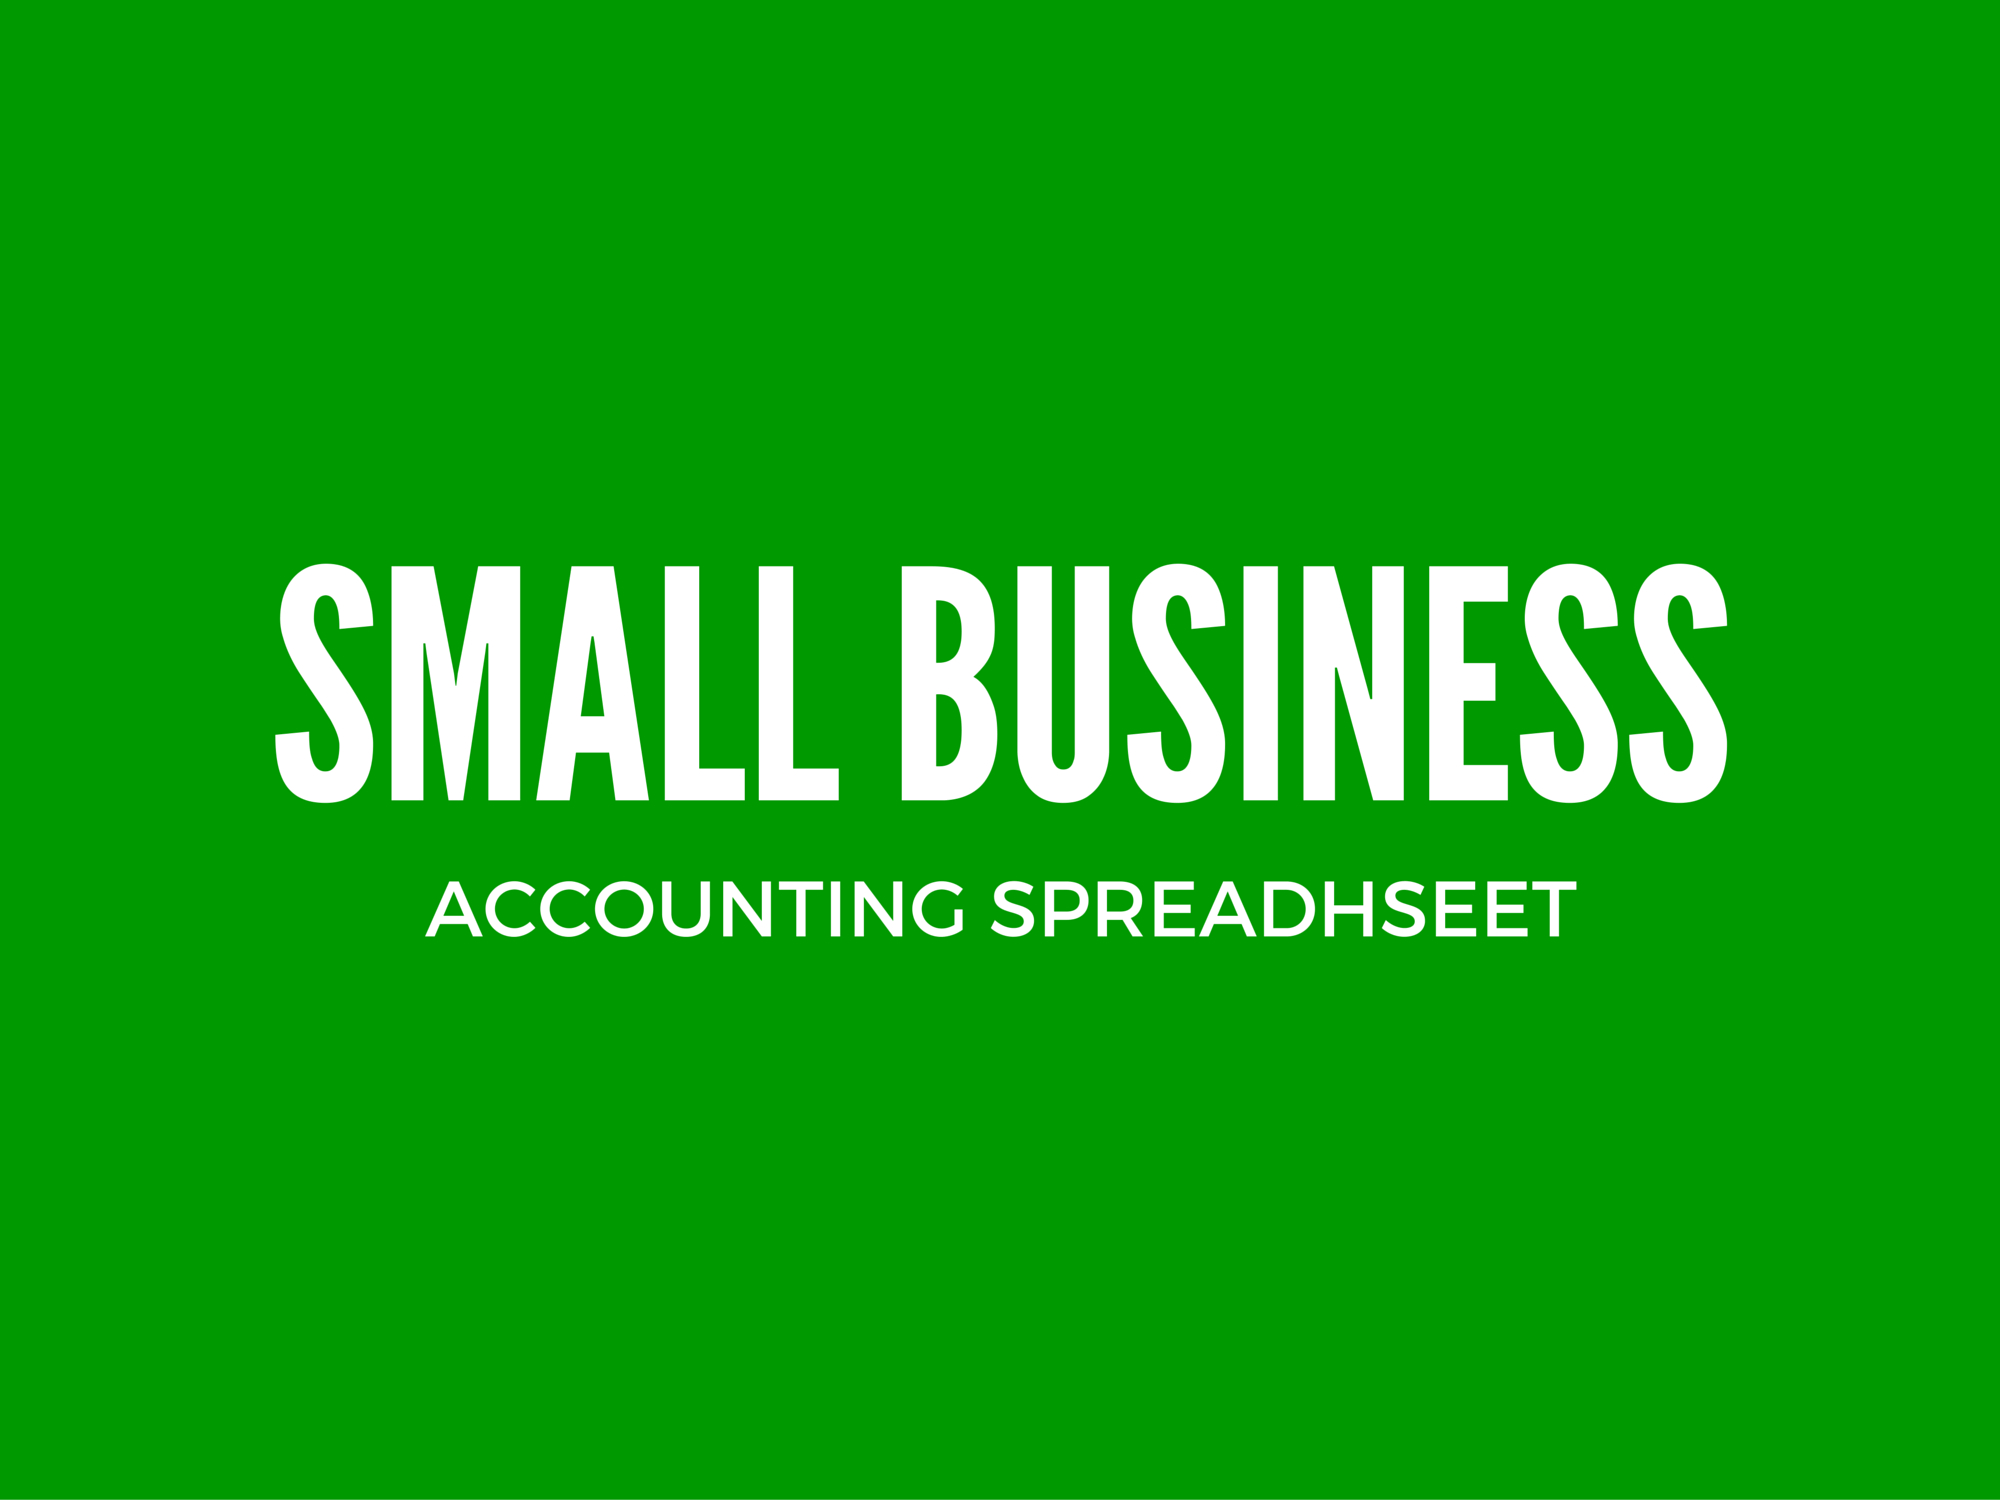 Excel Spreadsheet For Small Business Expenses Throughout Income And Expenditure Template For Small Business  Excel